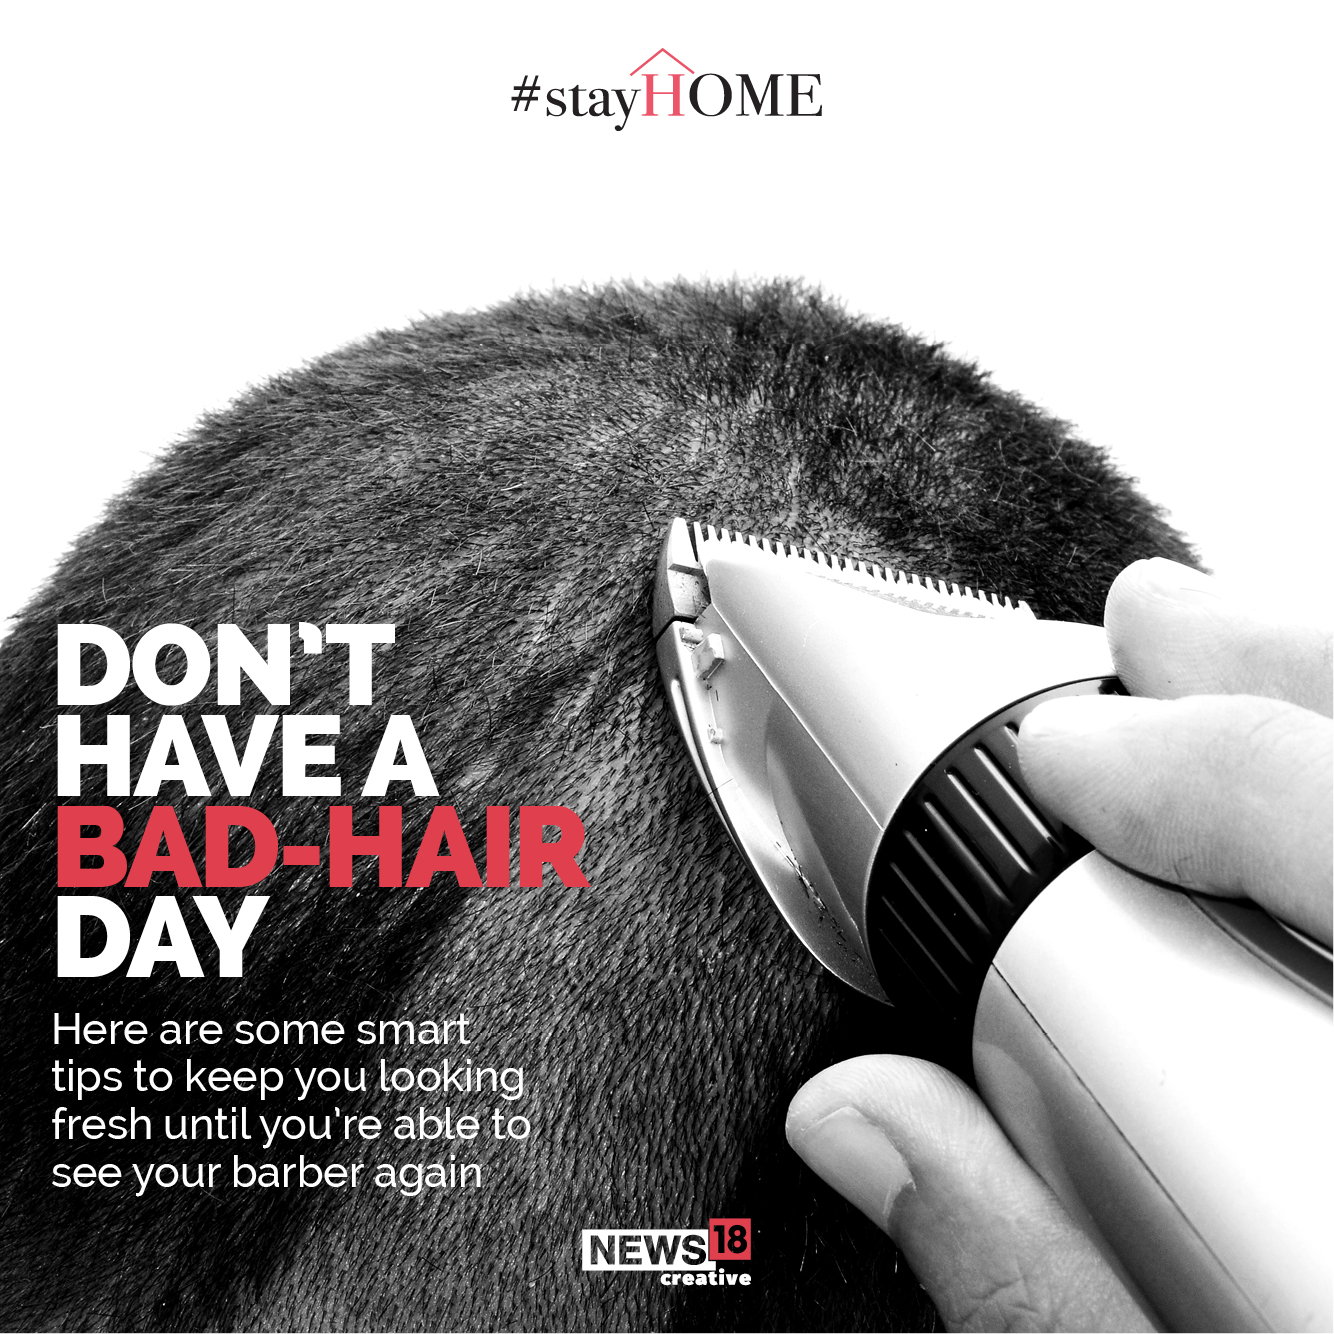 Dont have bad-hair day. Here are some smart tips to keep you looking fresh until youre able to see your barber again. (Image: News18 Creative)